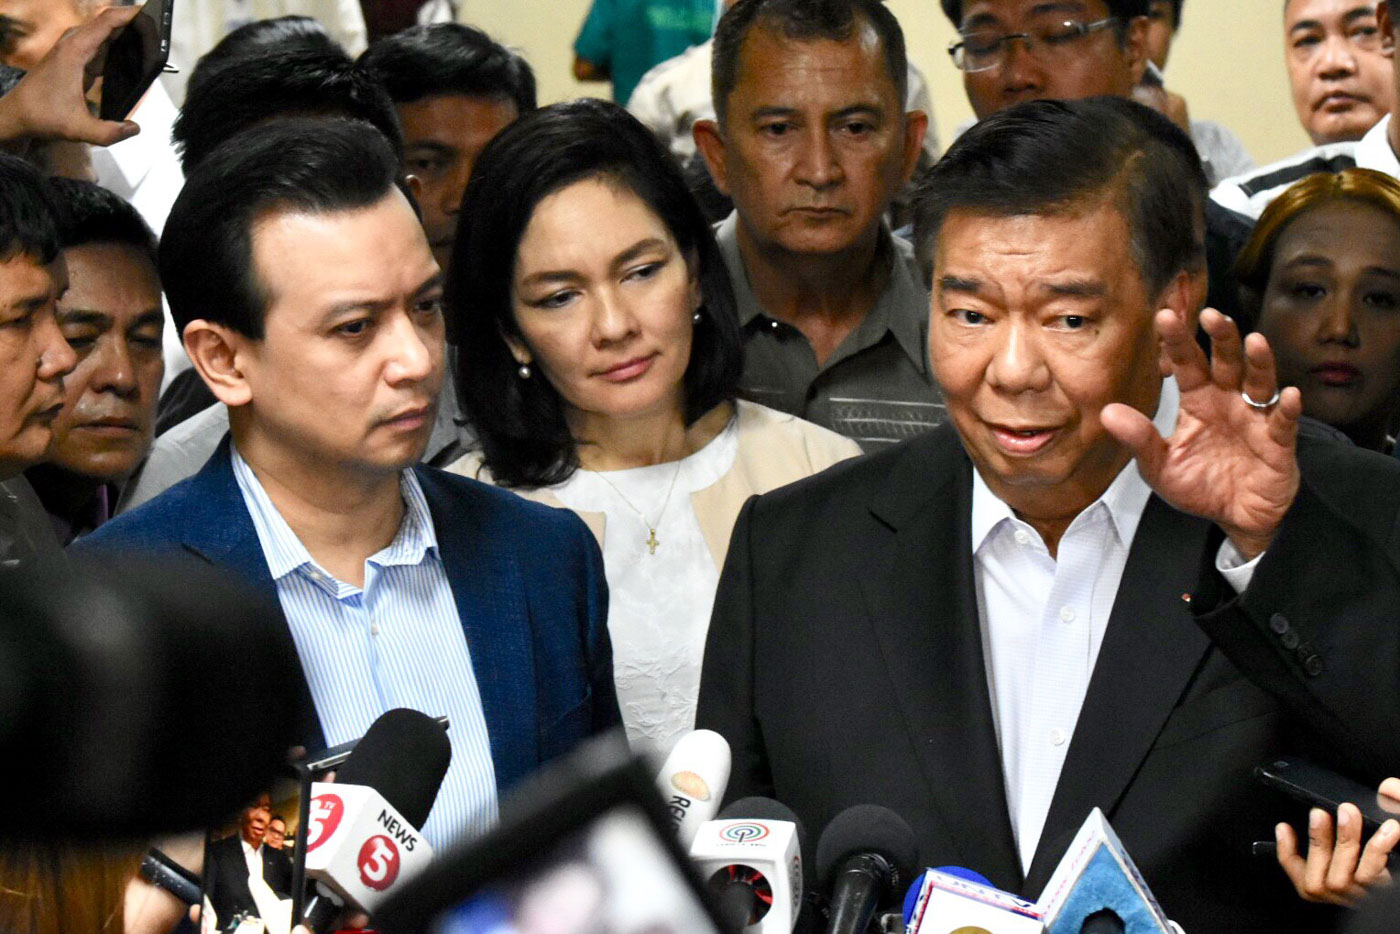 AMNESTY REVOKED. Senator Antonio Trillanes IV (L) faces the media regarding the arrest order on him following the revocation of his amnesty. Senate President Vicente Sotto III did not allow the arrest of Trillanes inside the Senate premises. Photo by Angie de Silva/Rappler